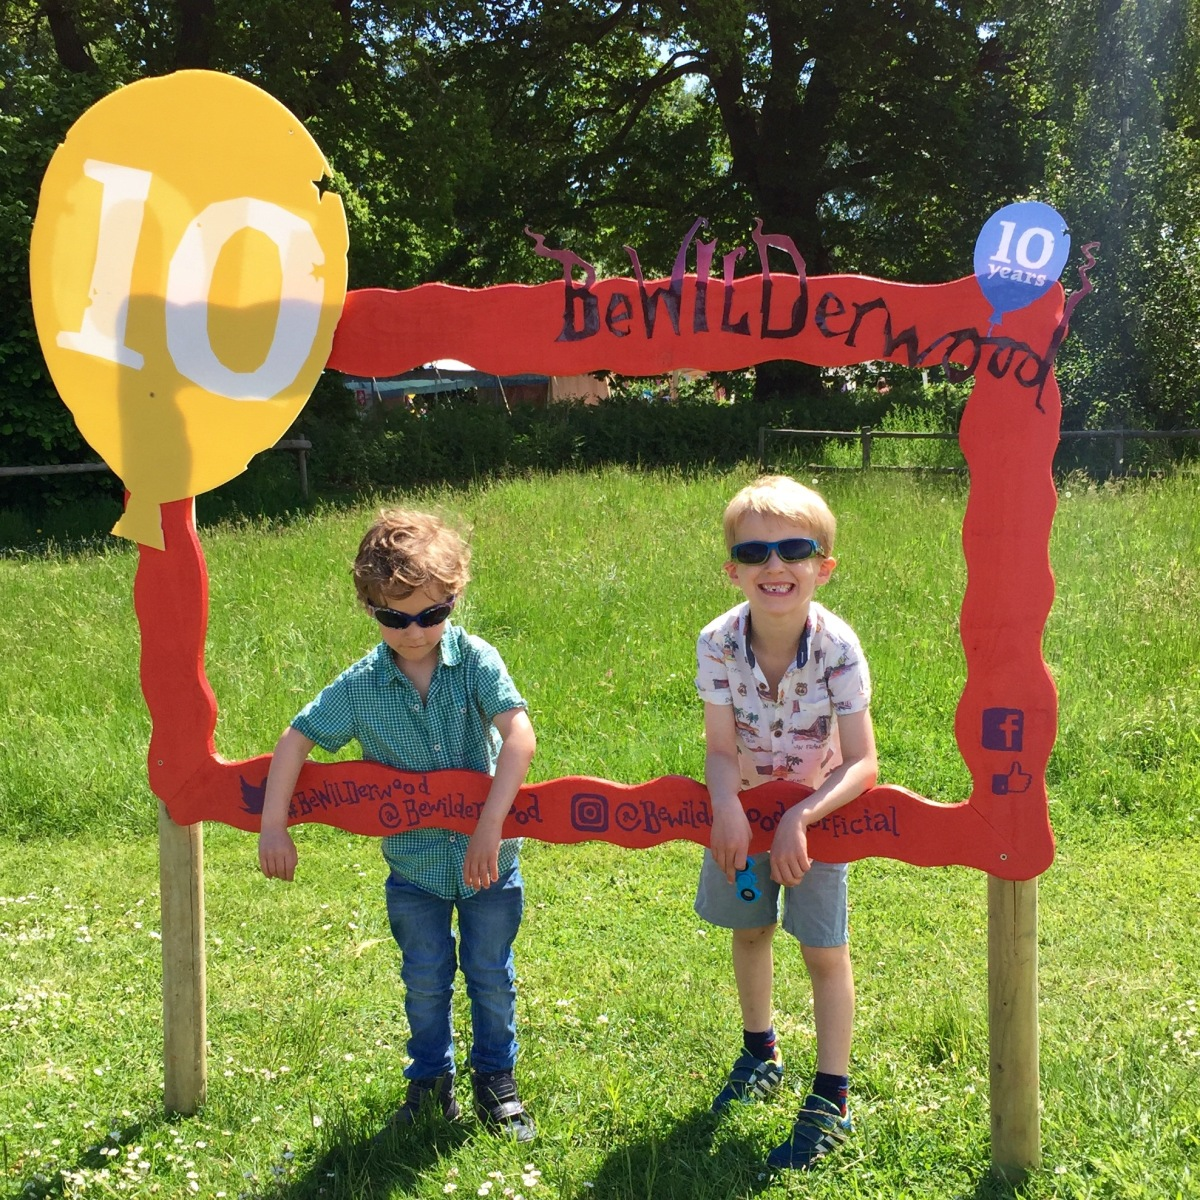 A photograph of Ben and Ollie posing in a wooden Instagram photo frame.